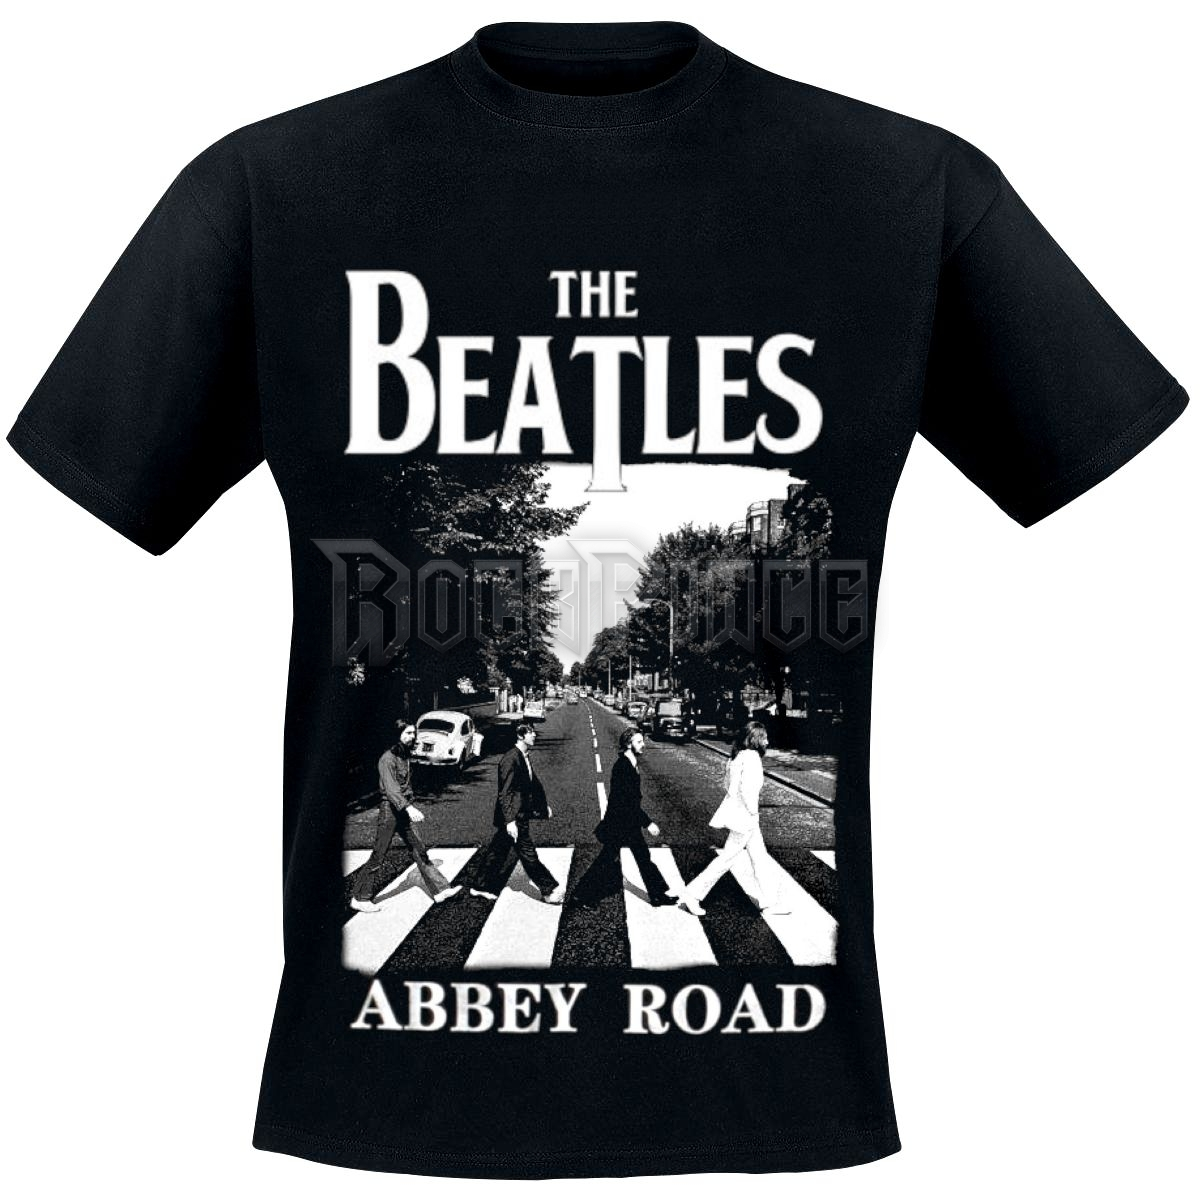 THE BEATLES - ABBEY ROAD - BLACK & WHITE- BEATTEEBLWH